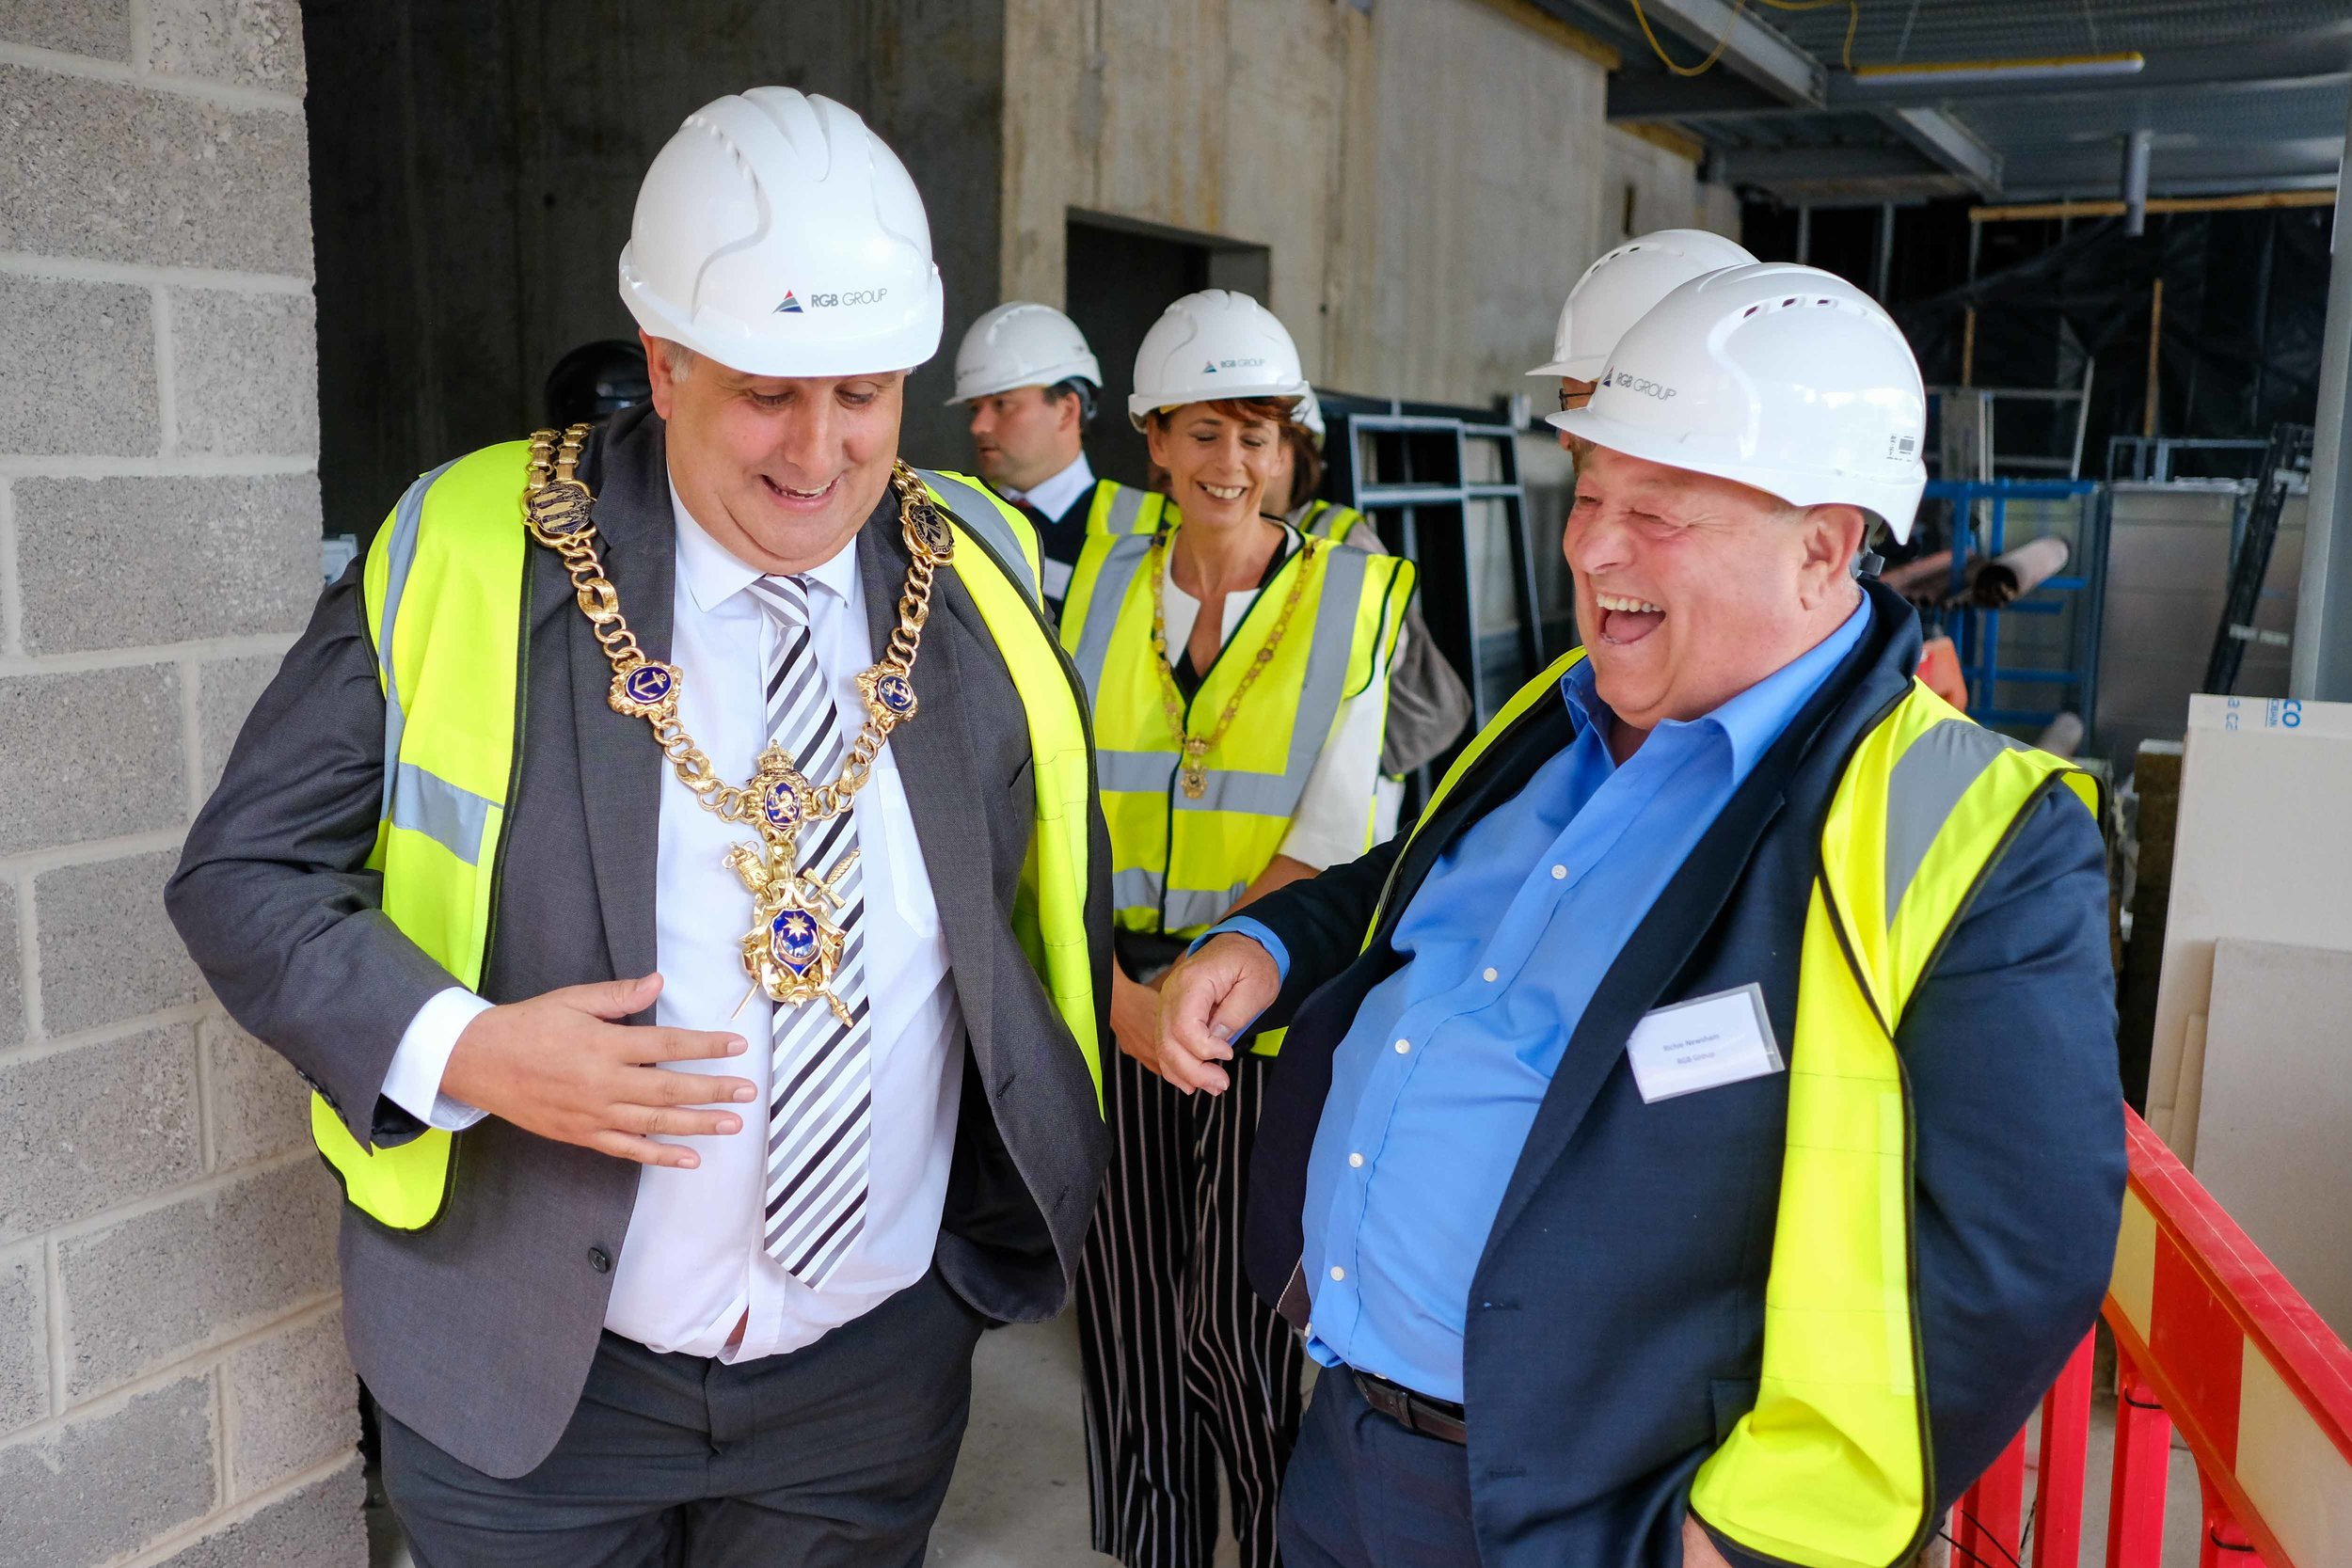 The ceremony was conducted by David Fuller - The Lord Mayor Of Portsmouth. Here he is with Richie Newsham, the Construction Director at RGB Grou